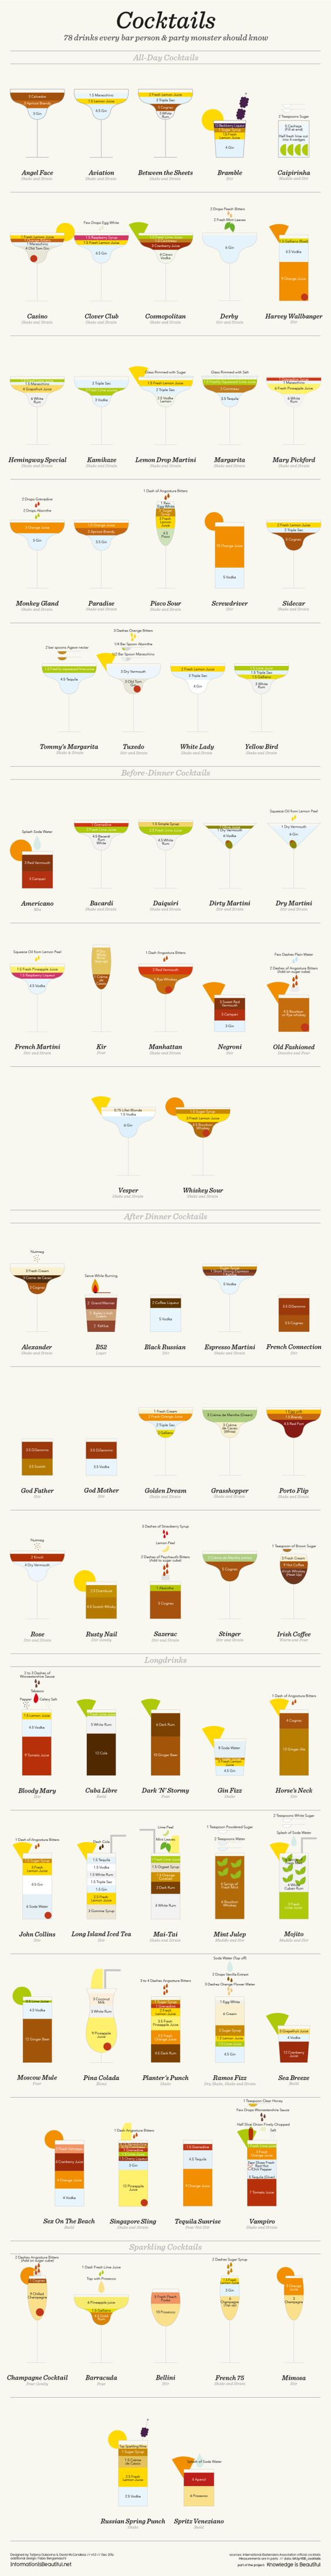 """This Cheat Sheet Shows You How to Make Every """"Official"""" Cocktail"""